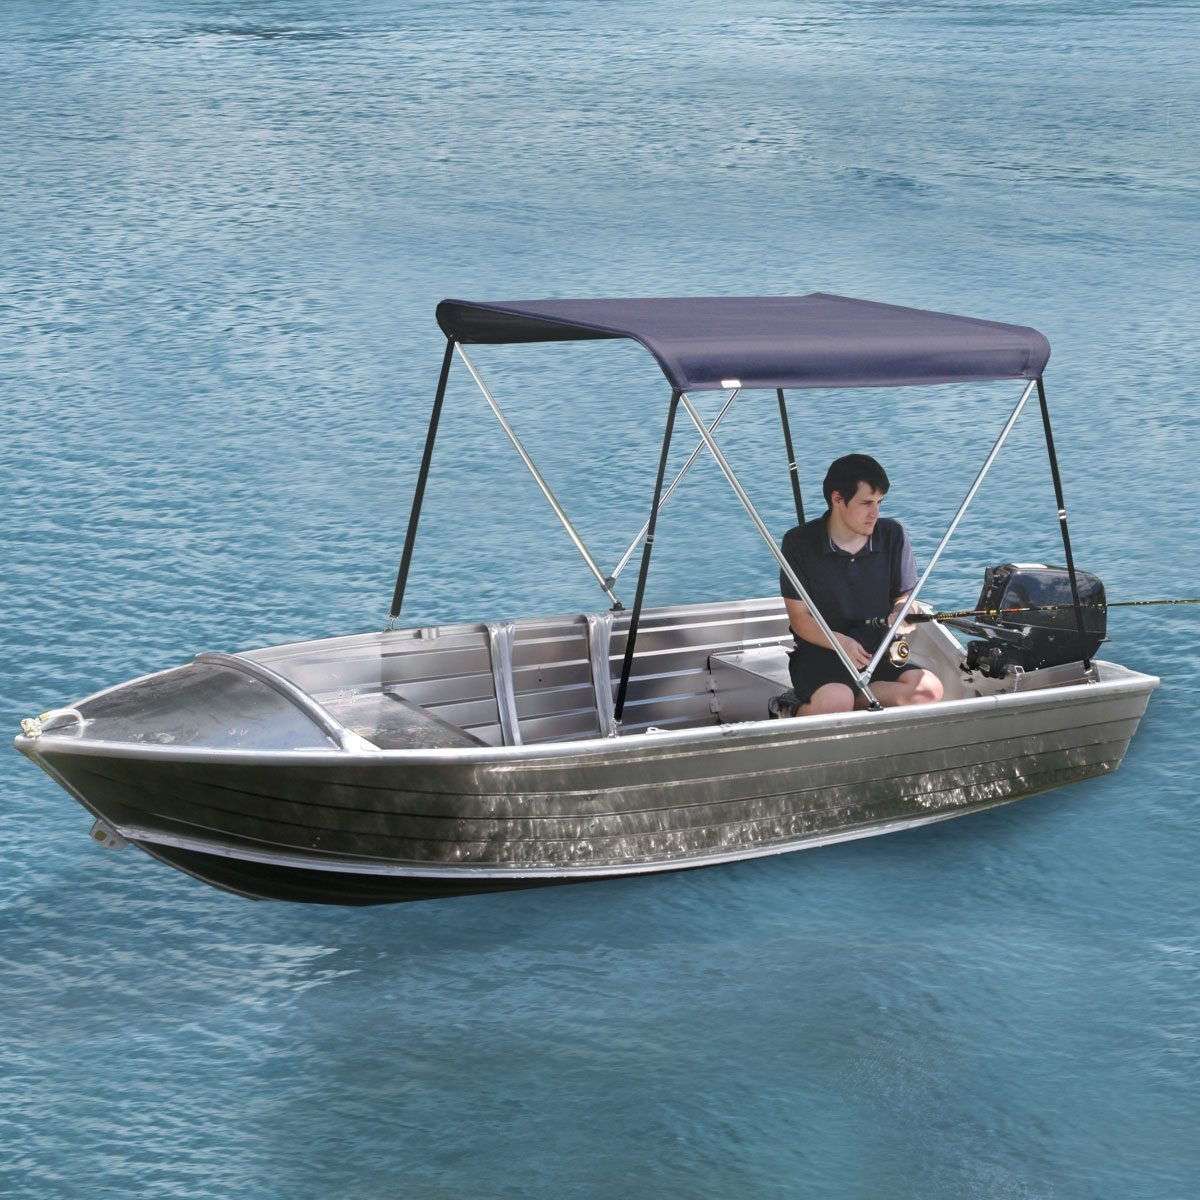 2 BOW BIMINI COVERS - FOR SMALLER DINGHY'S AND BOATS - $ 169.00